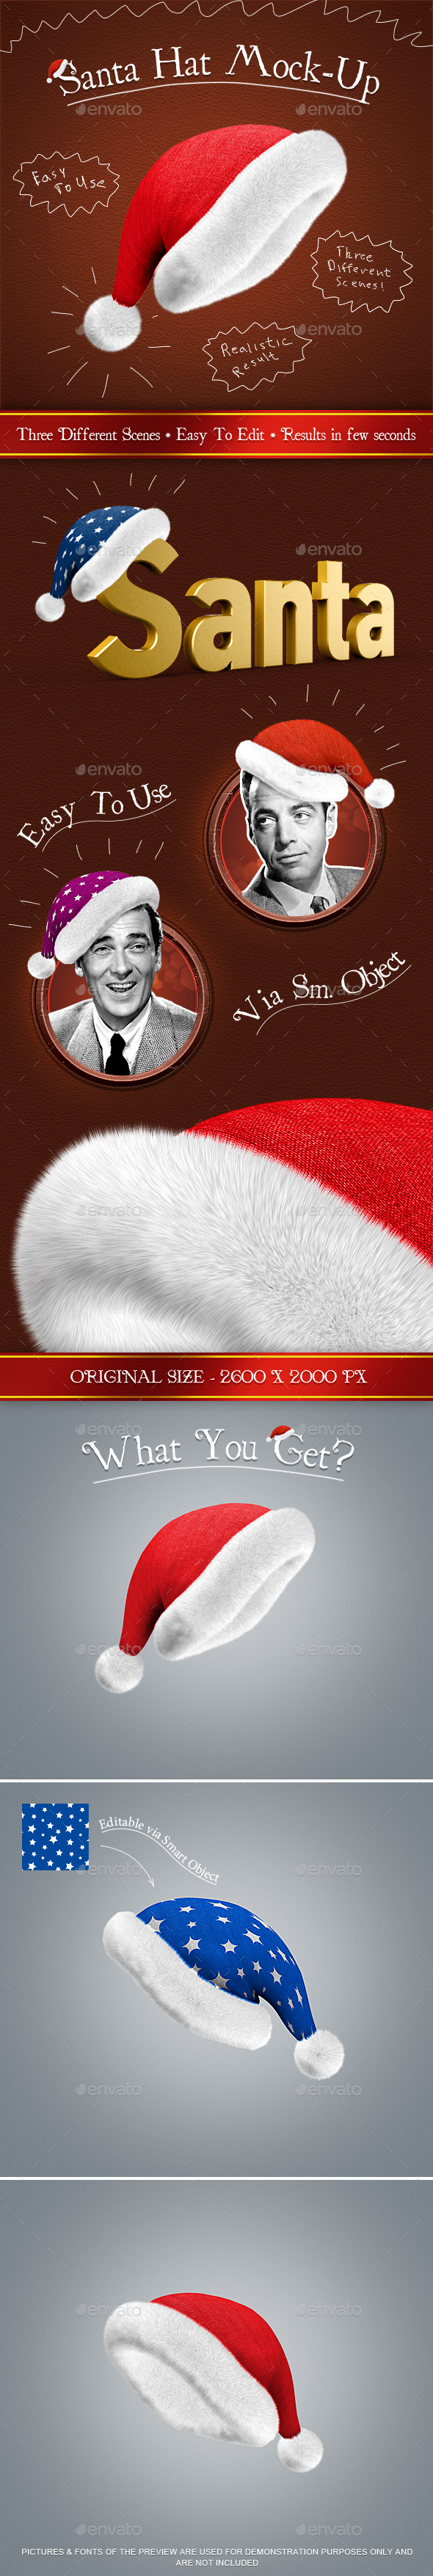 Santa Hat Mock-Up - Miscellaneous Product Mock-Ups